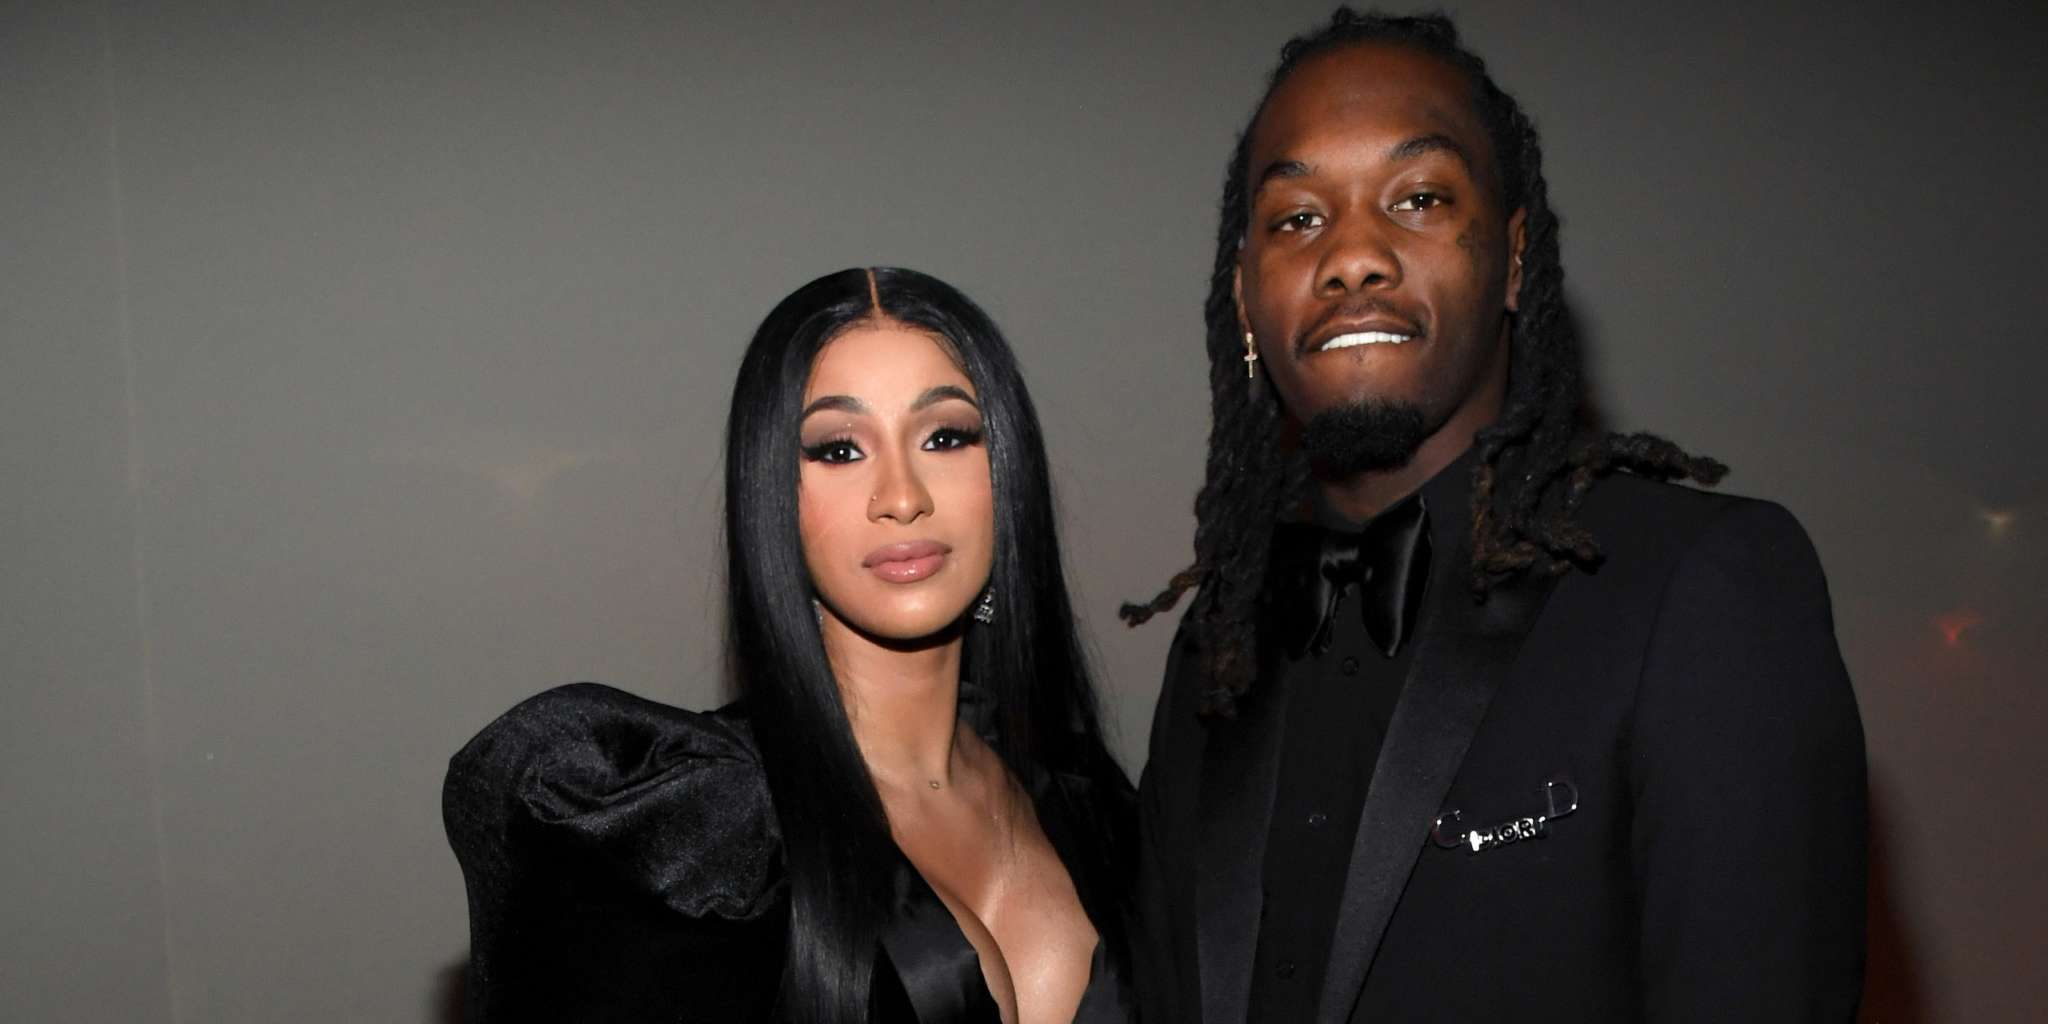 Offset Flirts With 'Scrumptious' Cardi B After Night Together At A Strip Club – Are They Back Together?